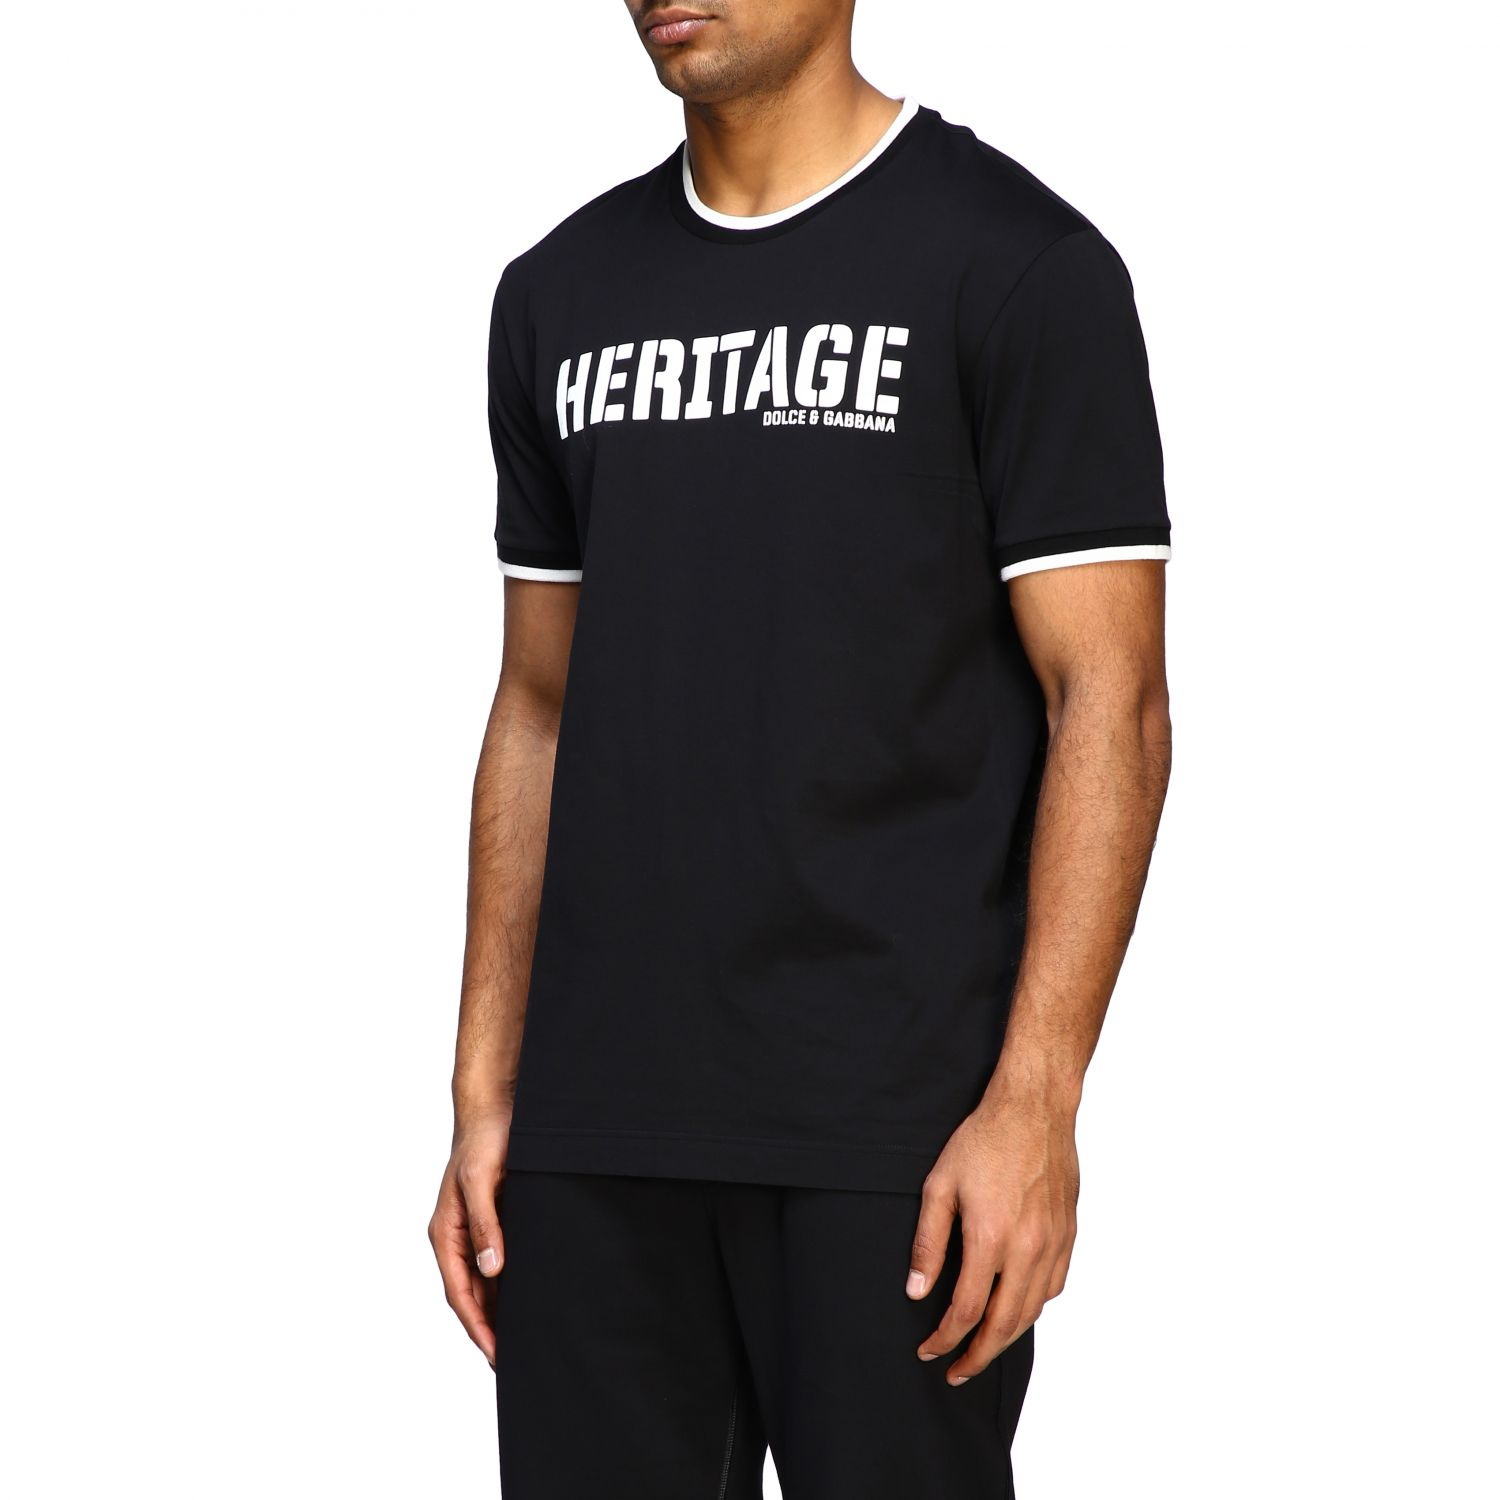 T-shirt Dolce & Gabbana: Dolce & Gabbana short-sleeved T-shirt with Heritage print black 4